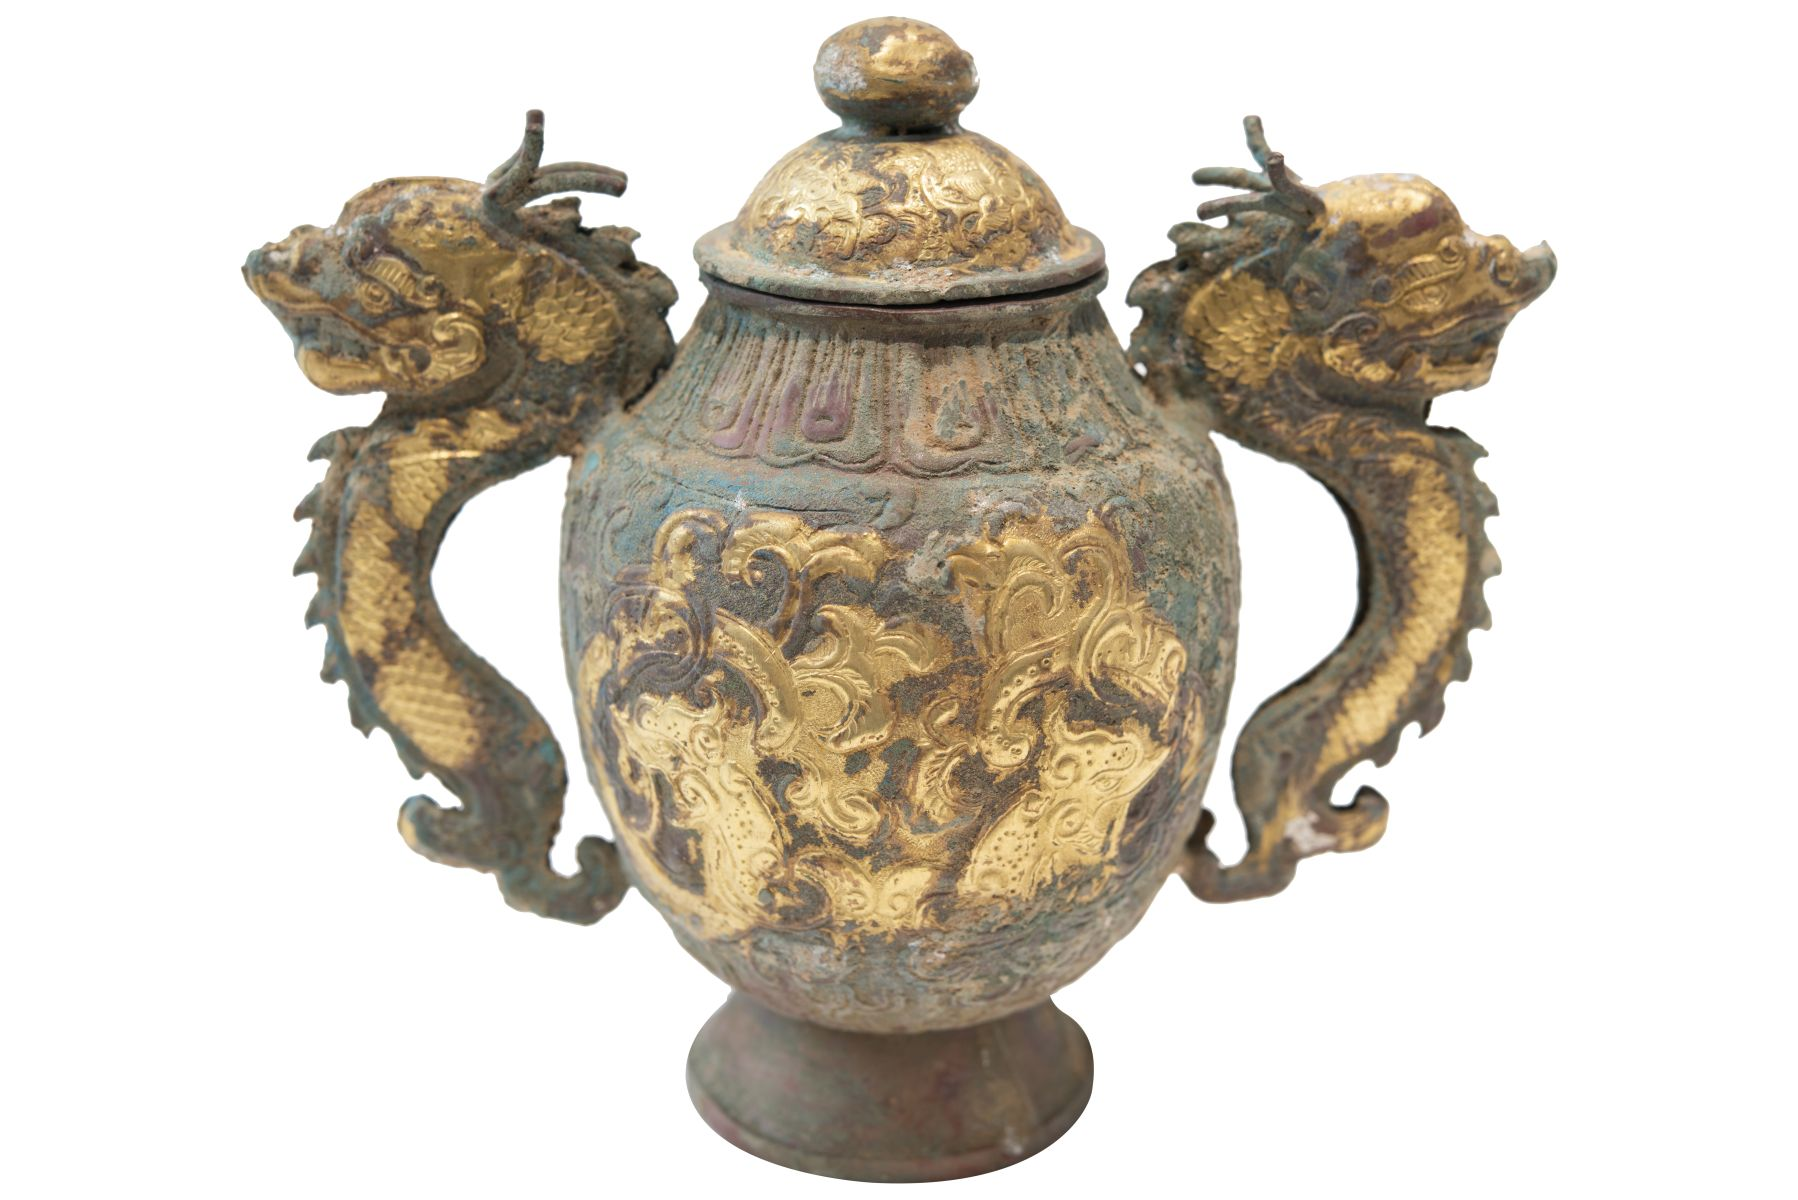 #151 Fire-gilded copper repoussé vessel in the style of the Tang Dynasty, probably late Qing Dynasty | Feuervergoldetes Kupfer Repoussé Gefäß im Stil der Tang Dynastie, vermutlich späte Qing Dynastie Image